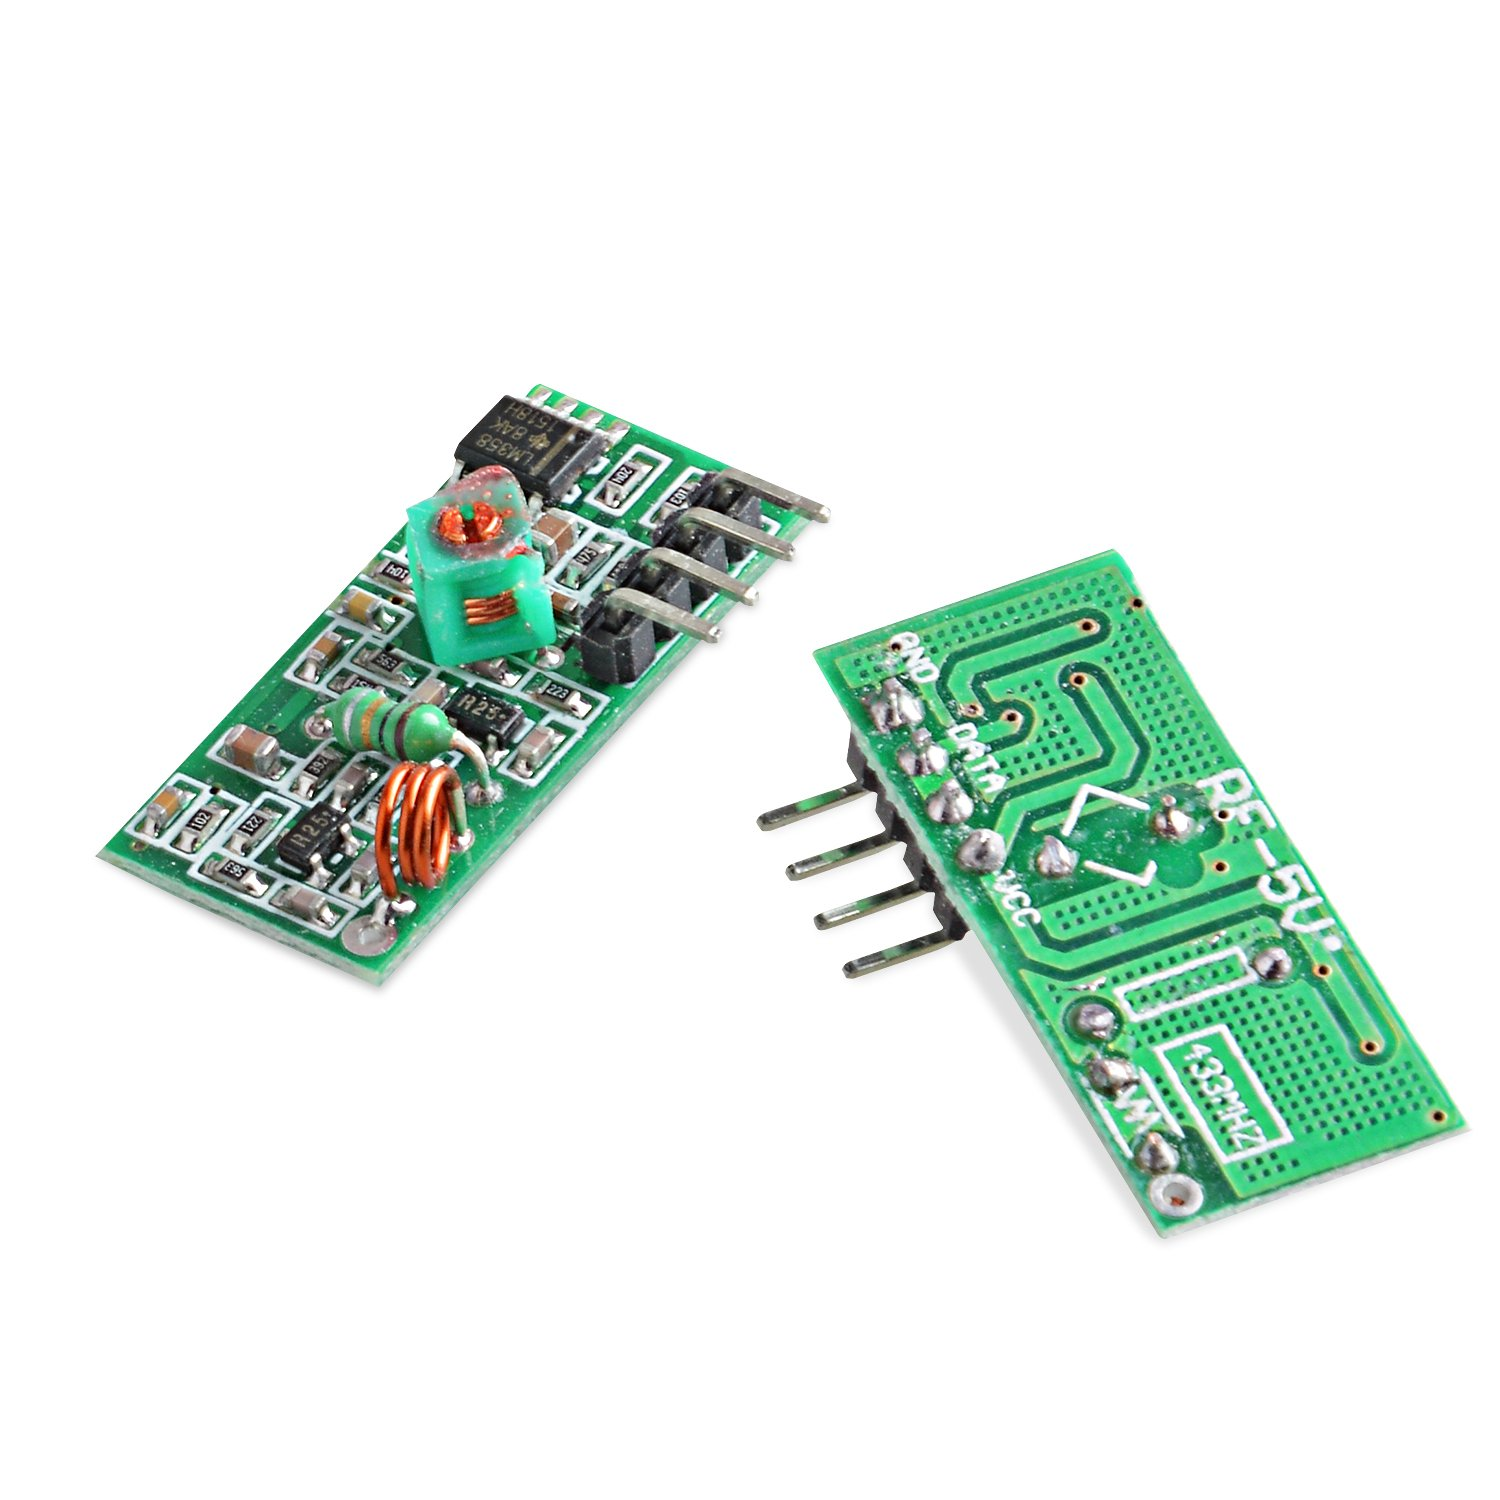 Aukru 3x 433mhz Rf Wireless Transmitter And Receiver Module Kit For 4 Channel Circuit Cy046 Buy Arduino Raspberry Pi Computers Accessories